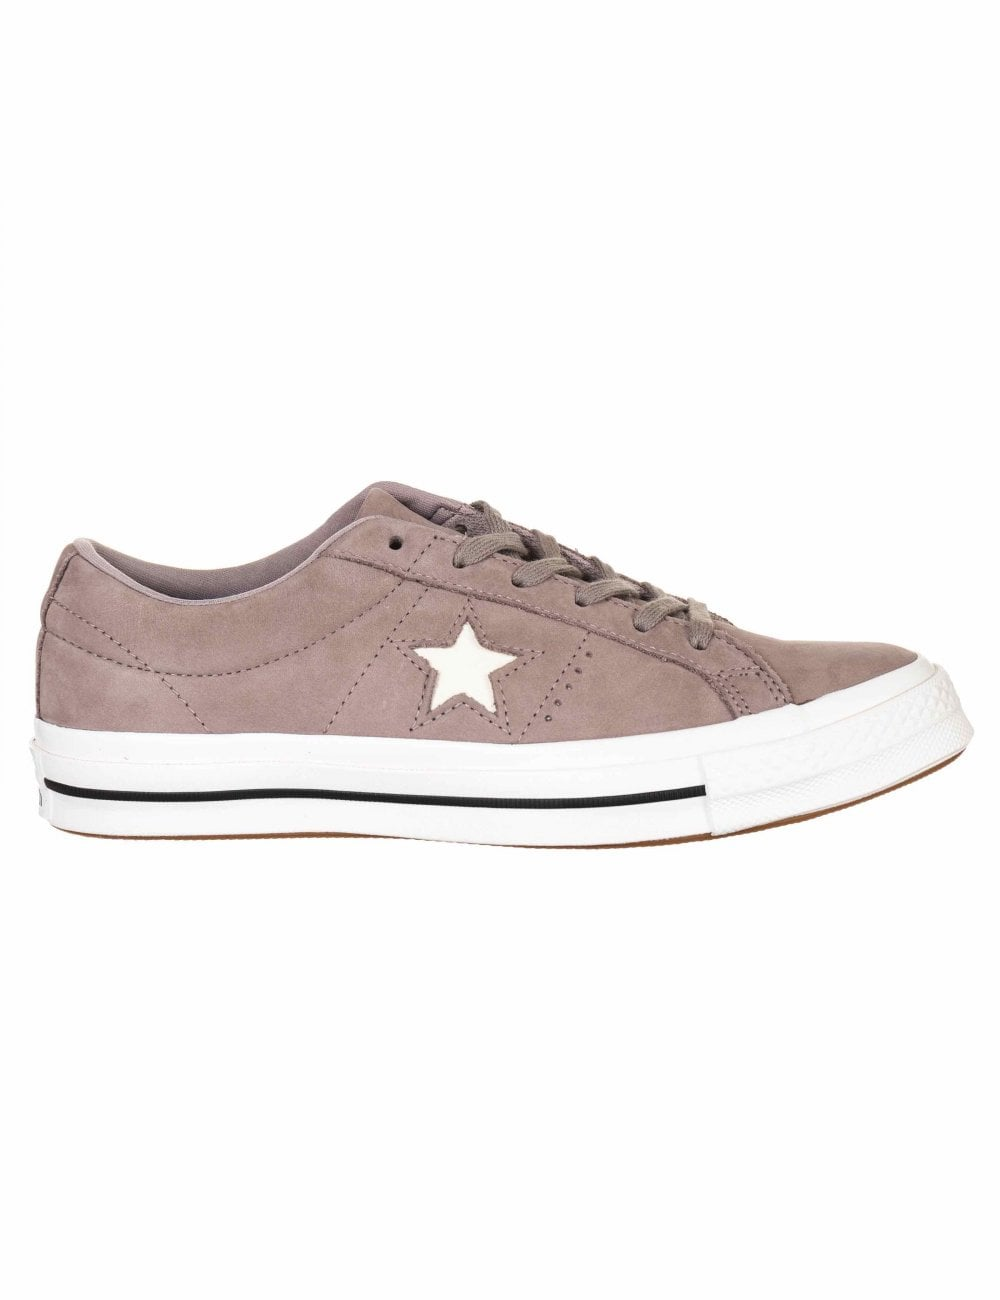 624d72250ed Converse One Star Ox Trainers - Mercury Grey Vintage White ...